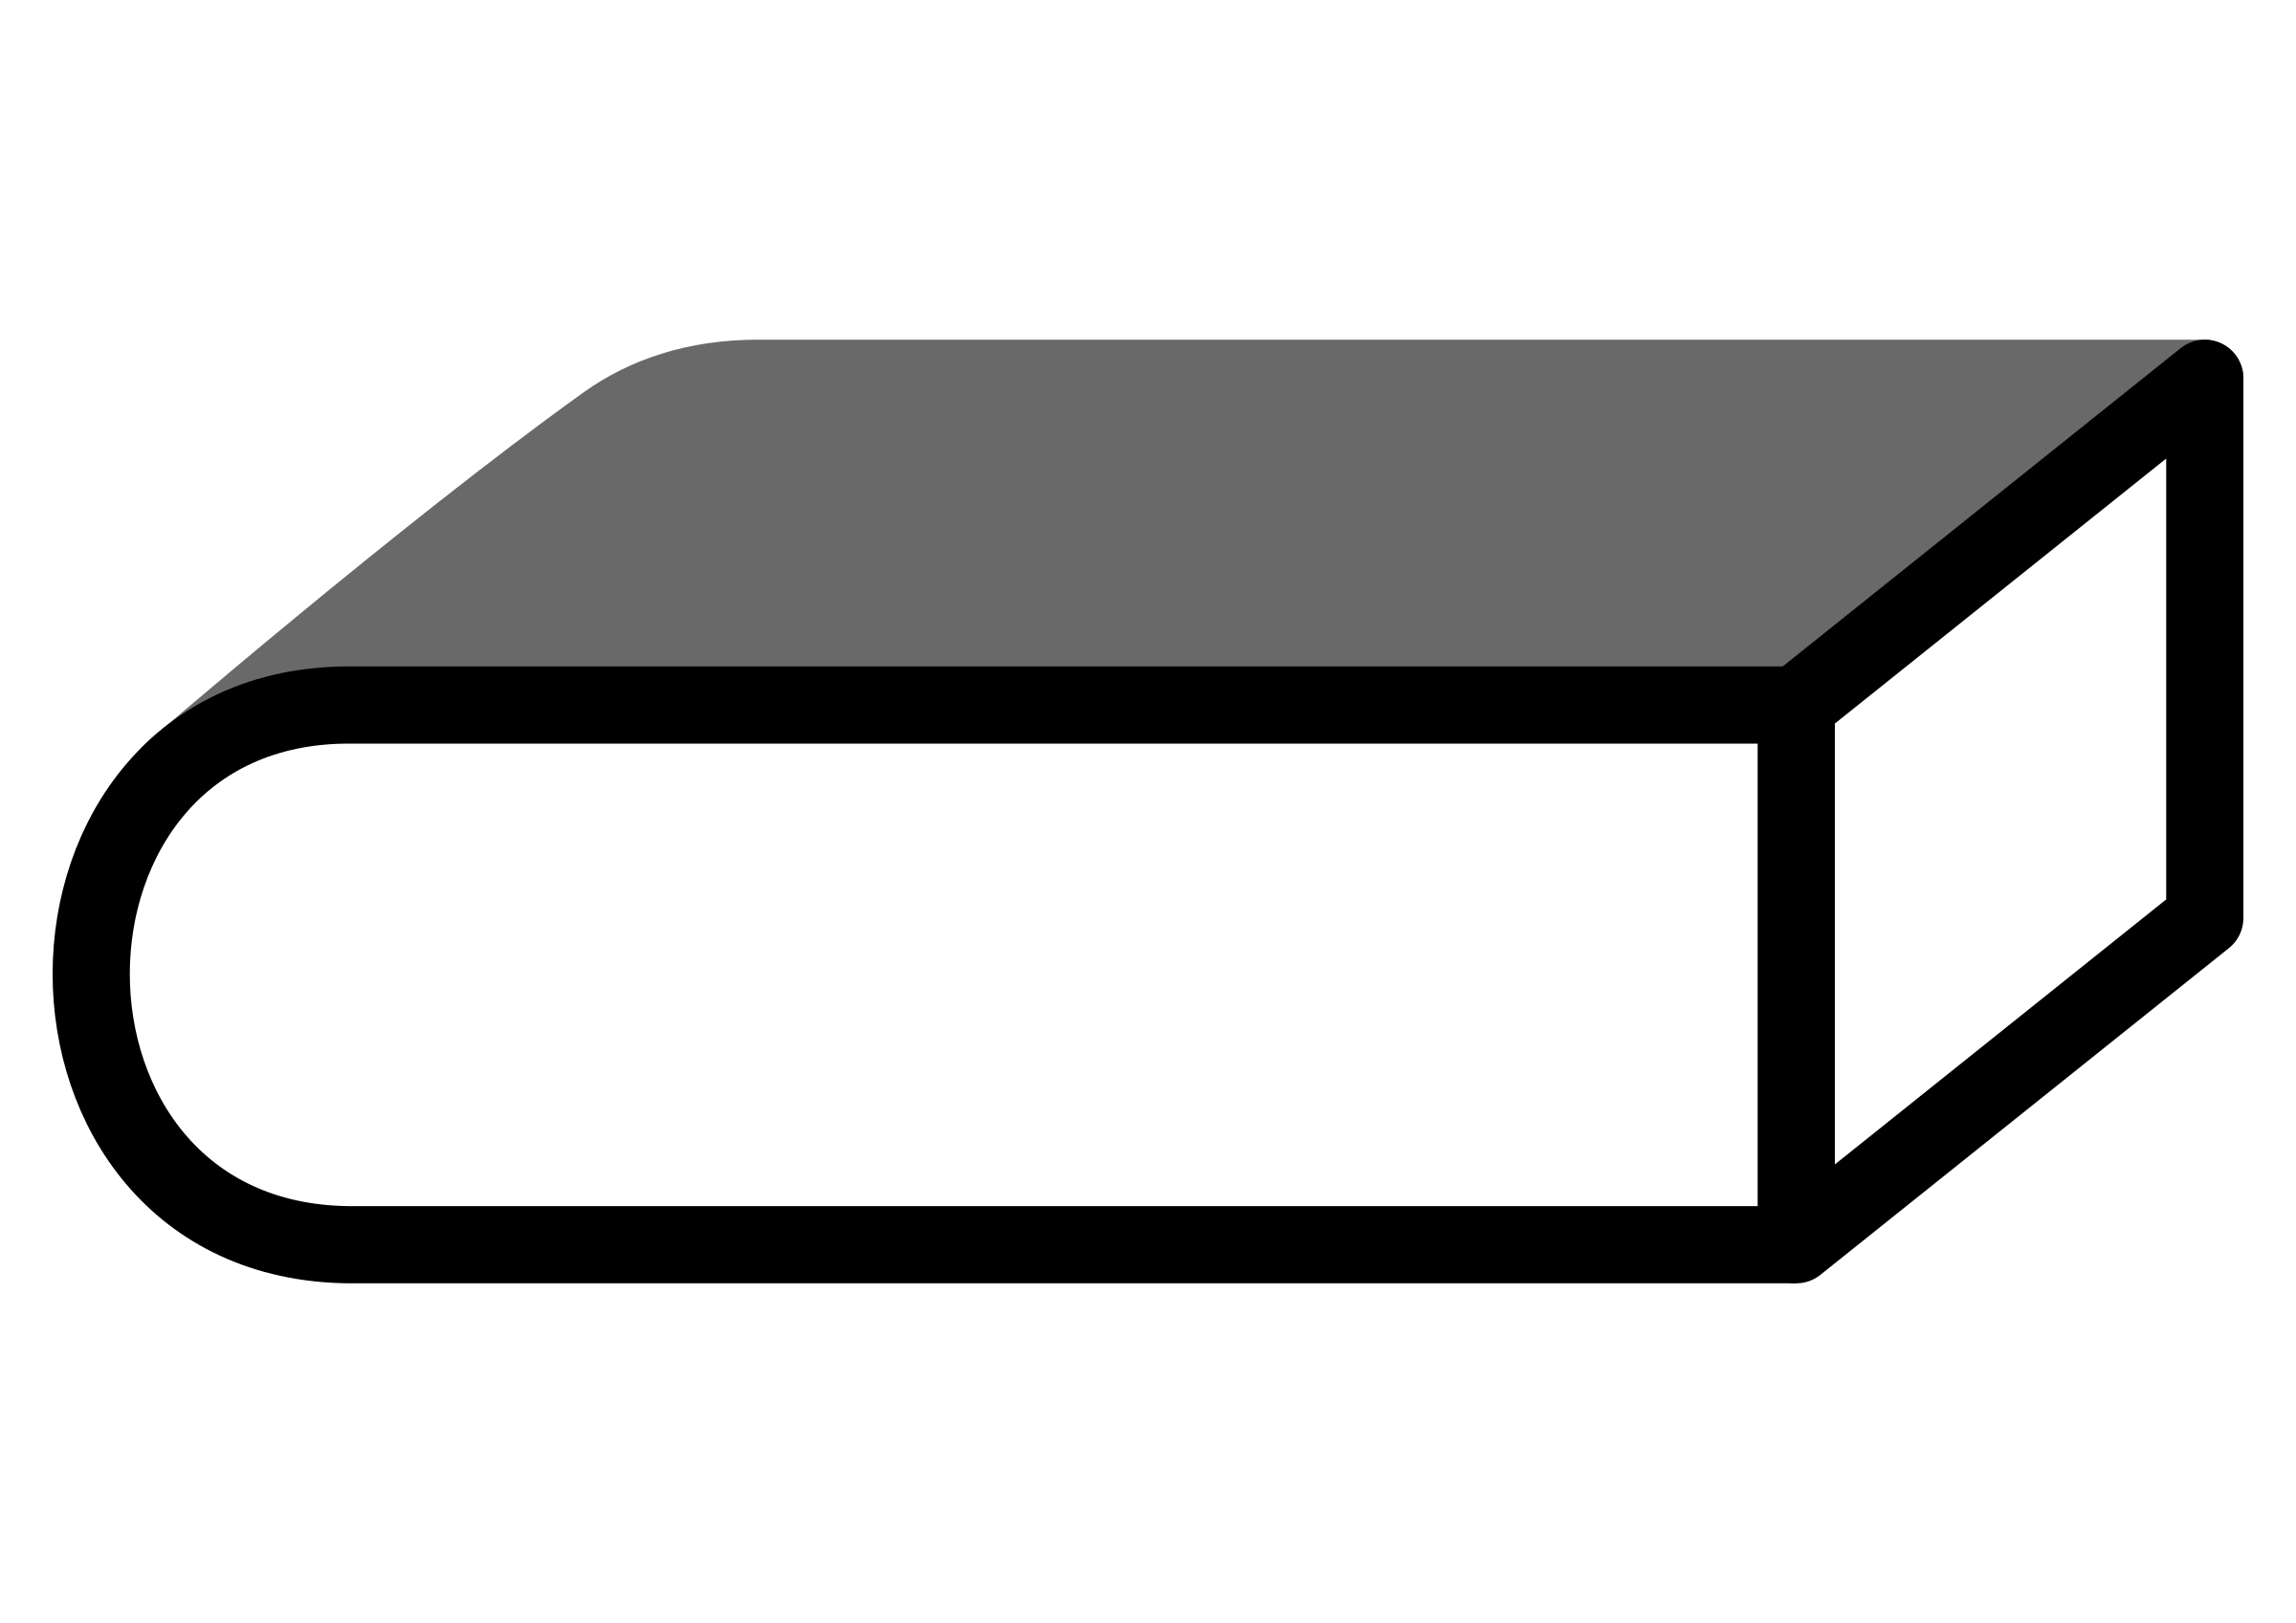 Clipart book table. Generic big image png